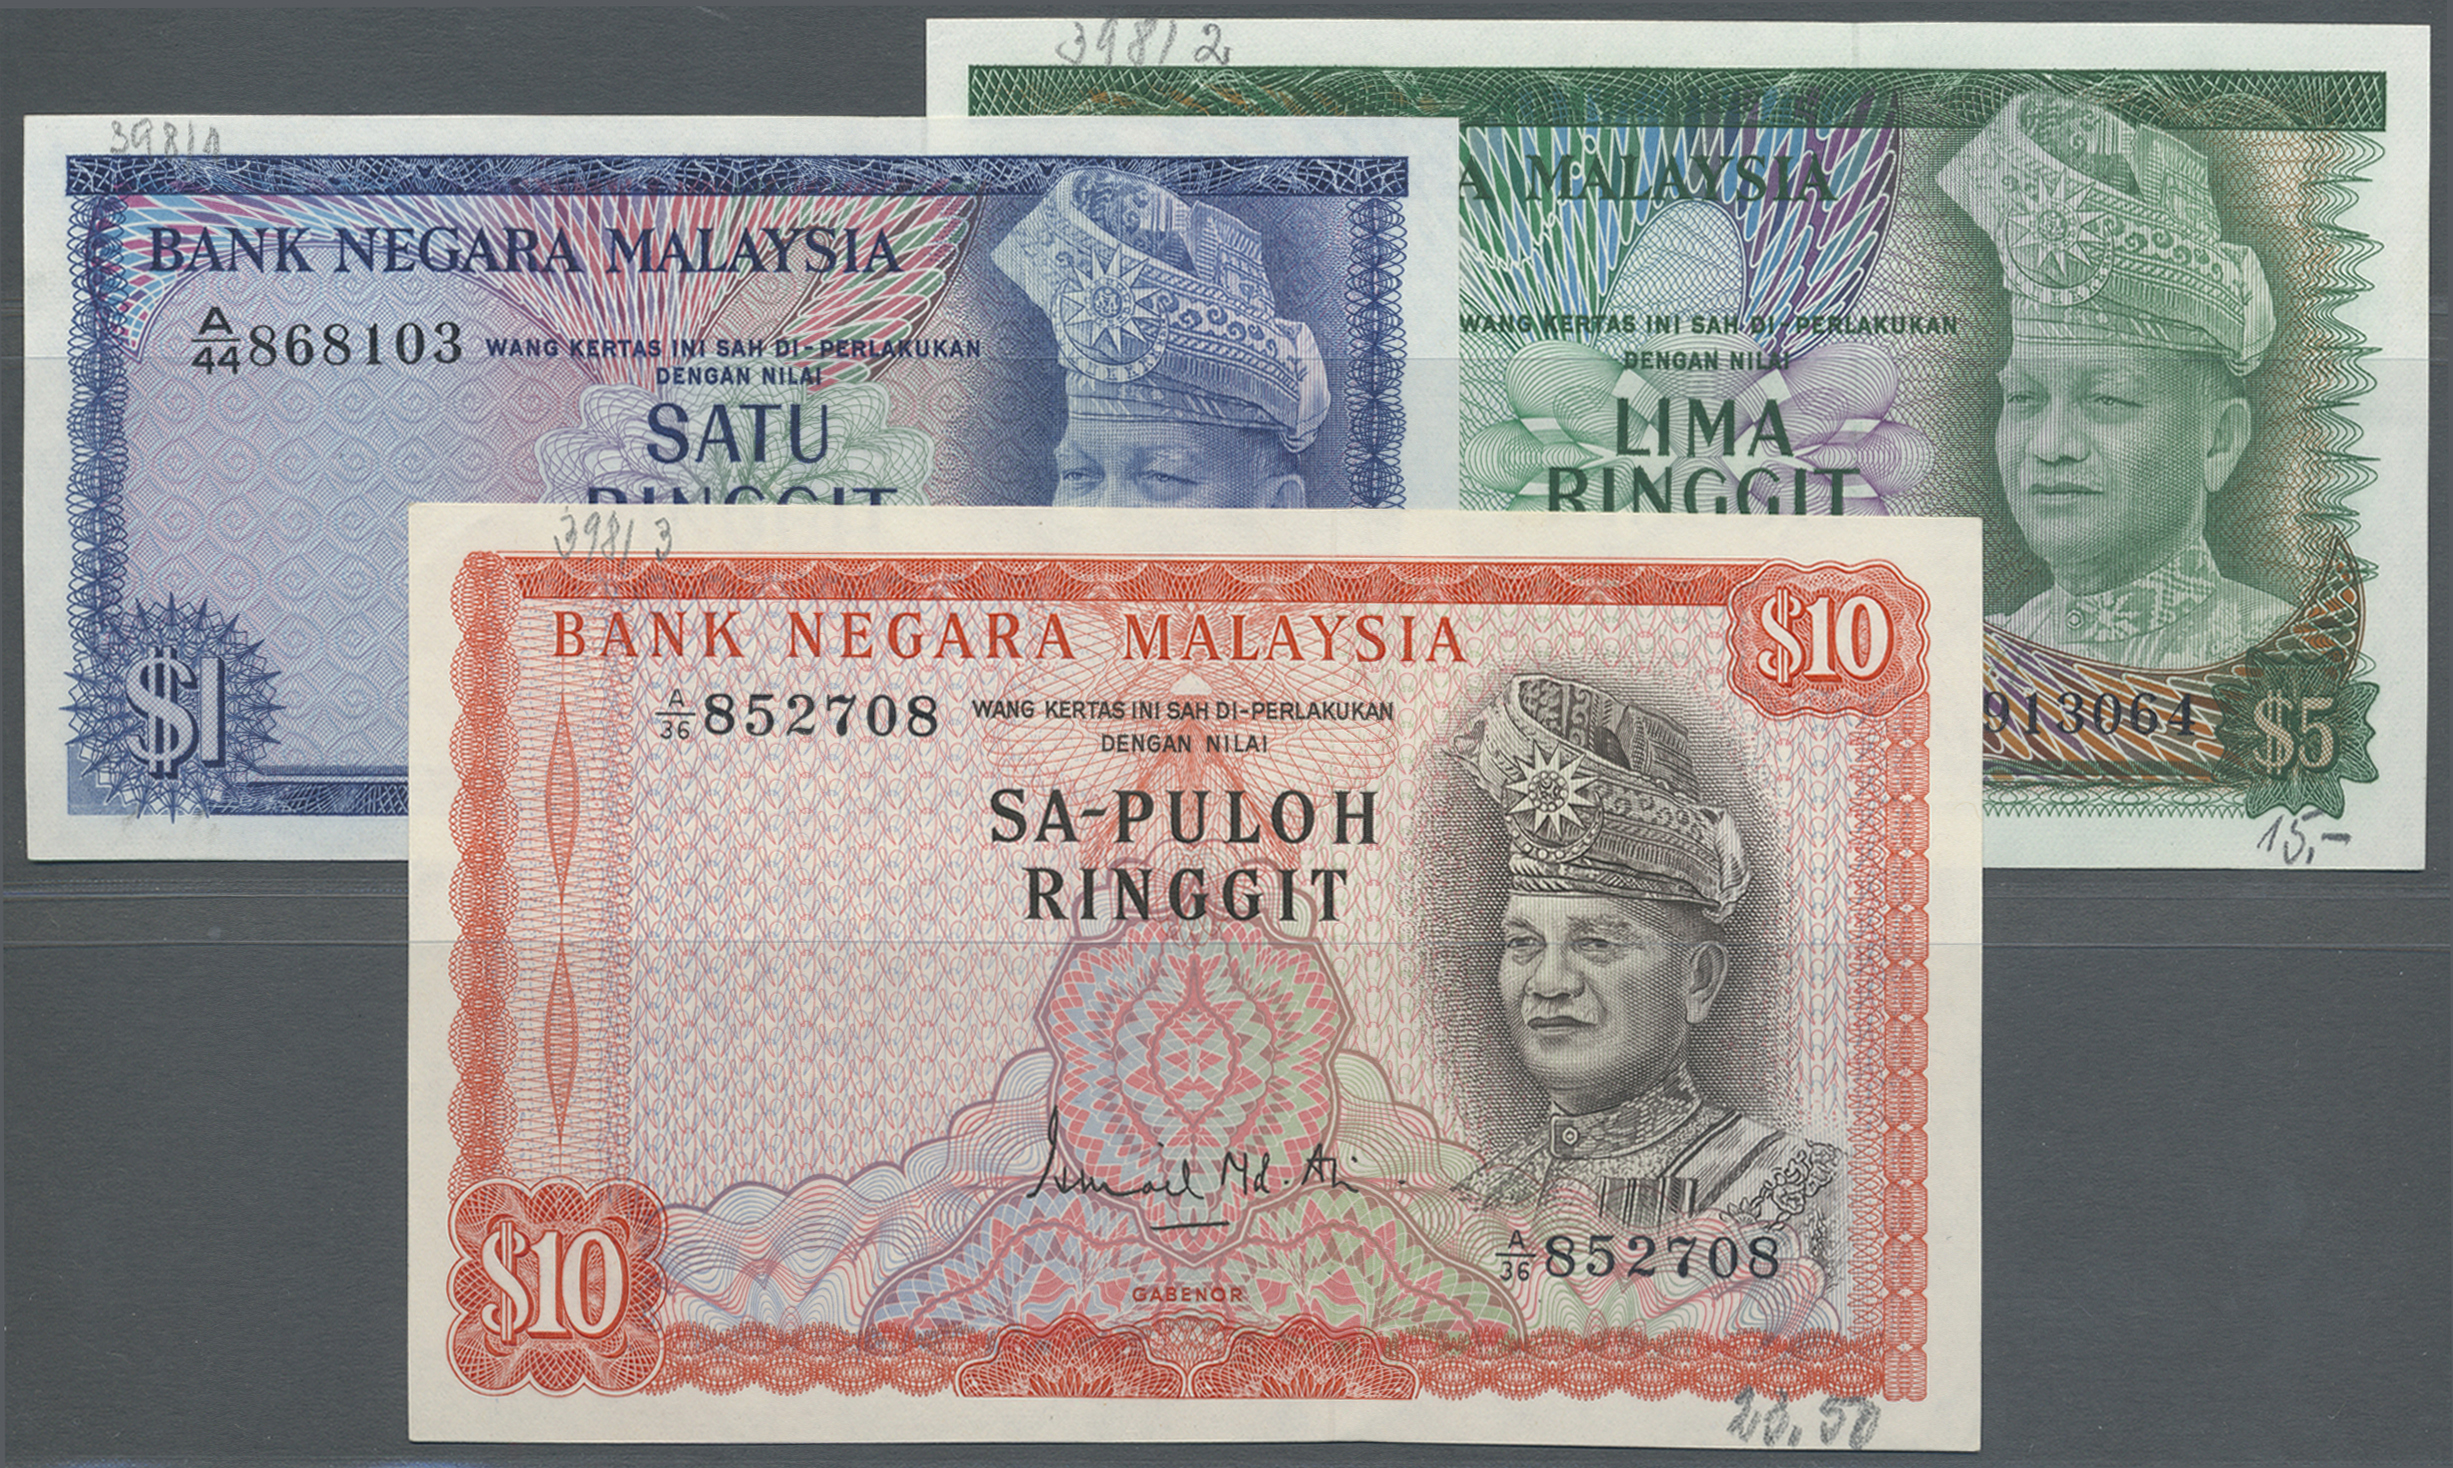 Stamp Auction - Malaysia | Banknoten - Banknotes Worldwide Auction